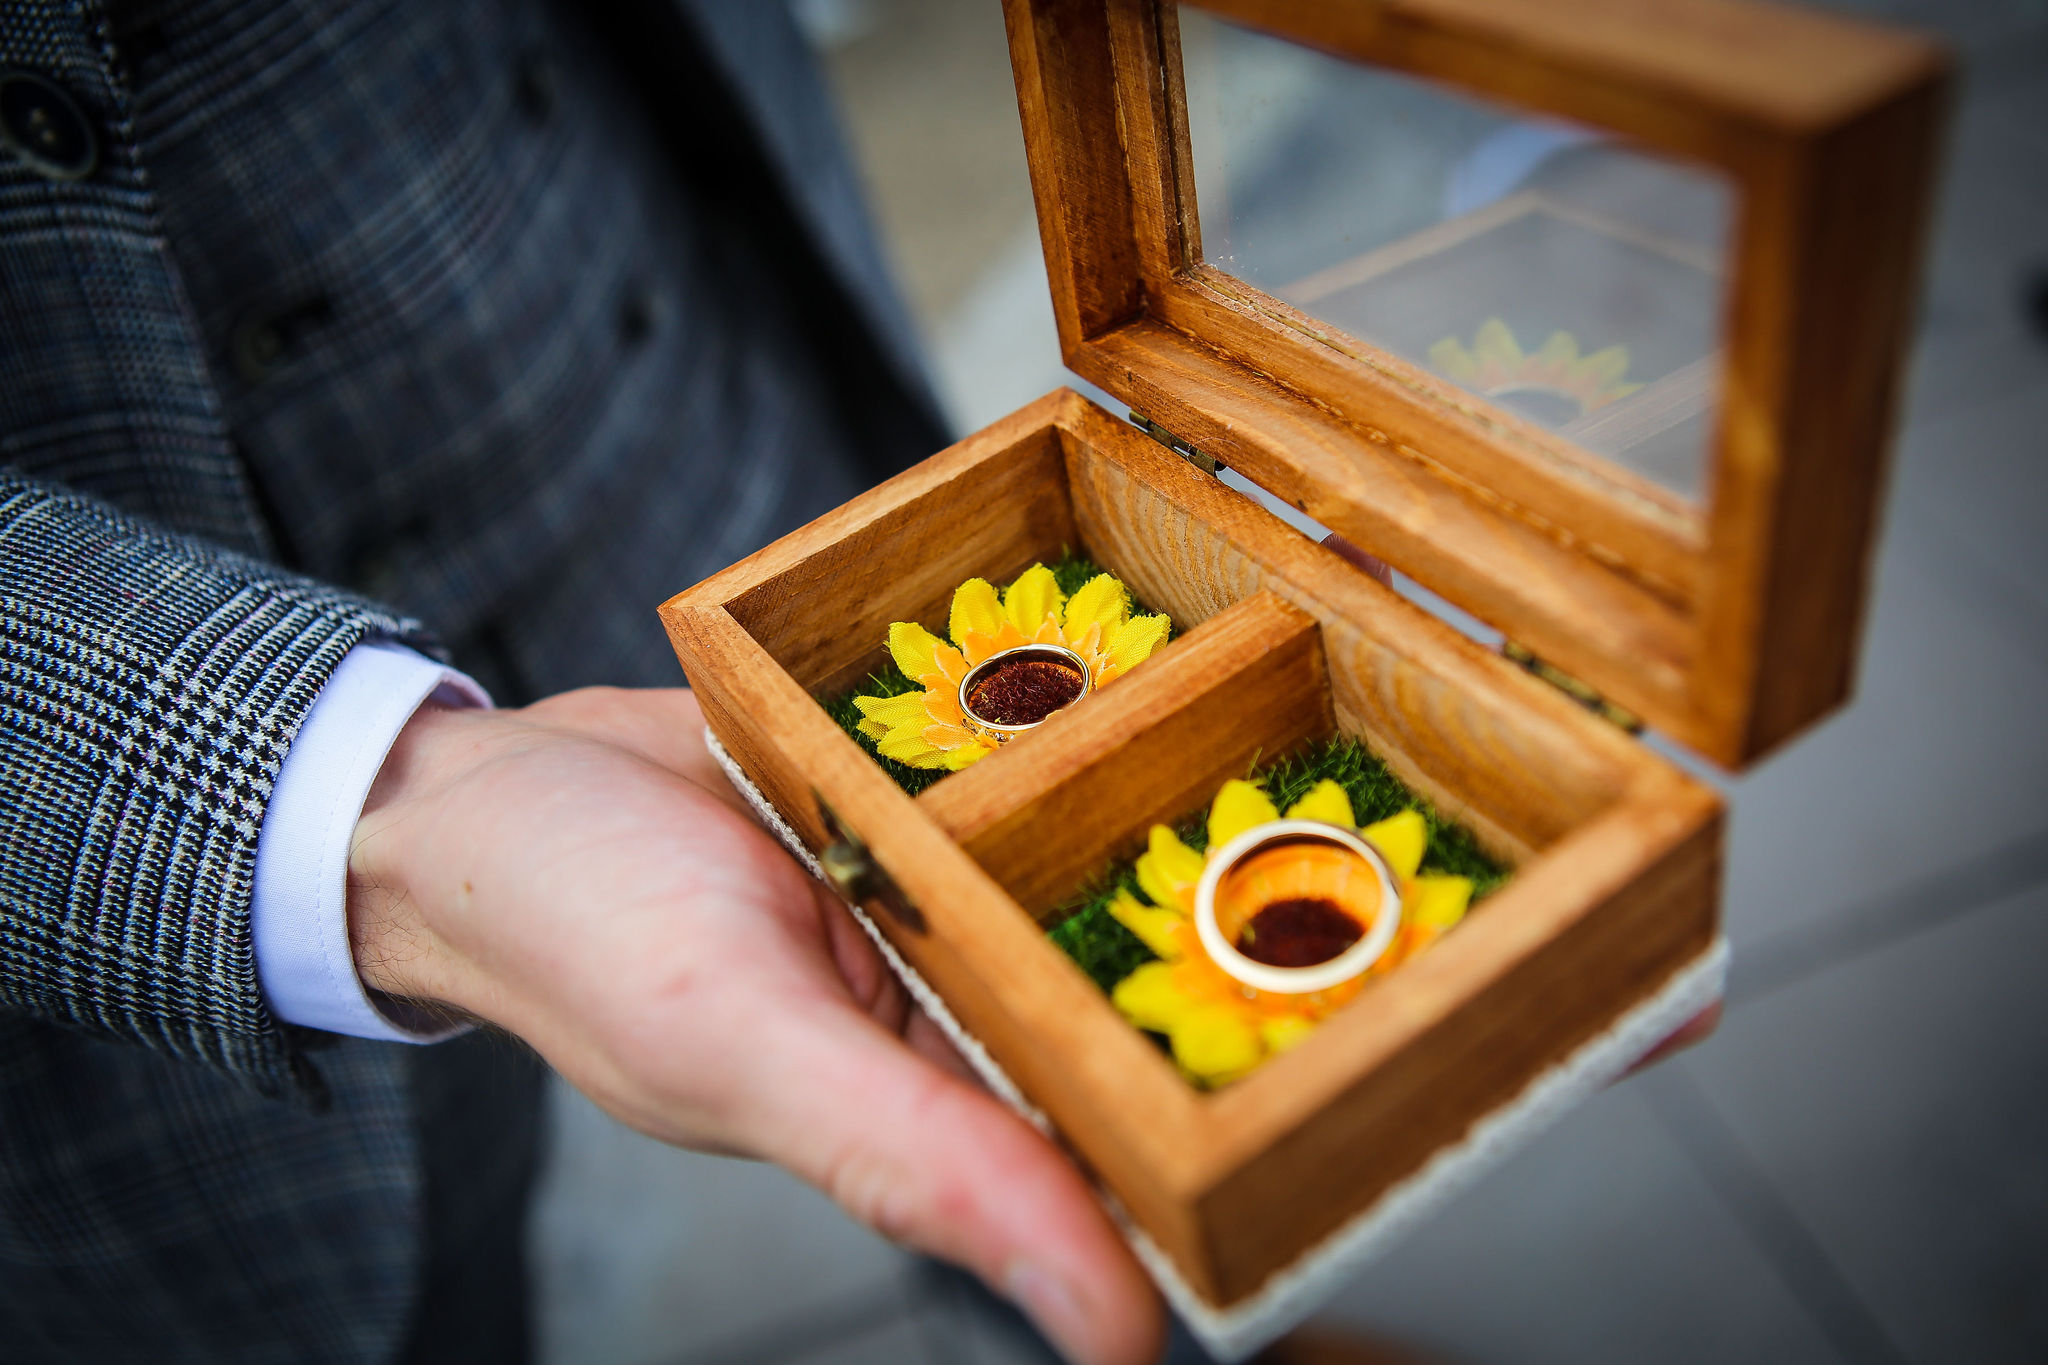 Harriet&Rhys Wedding - sunflower wedding ring presentation box